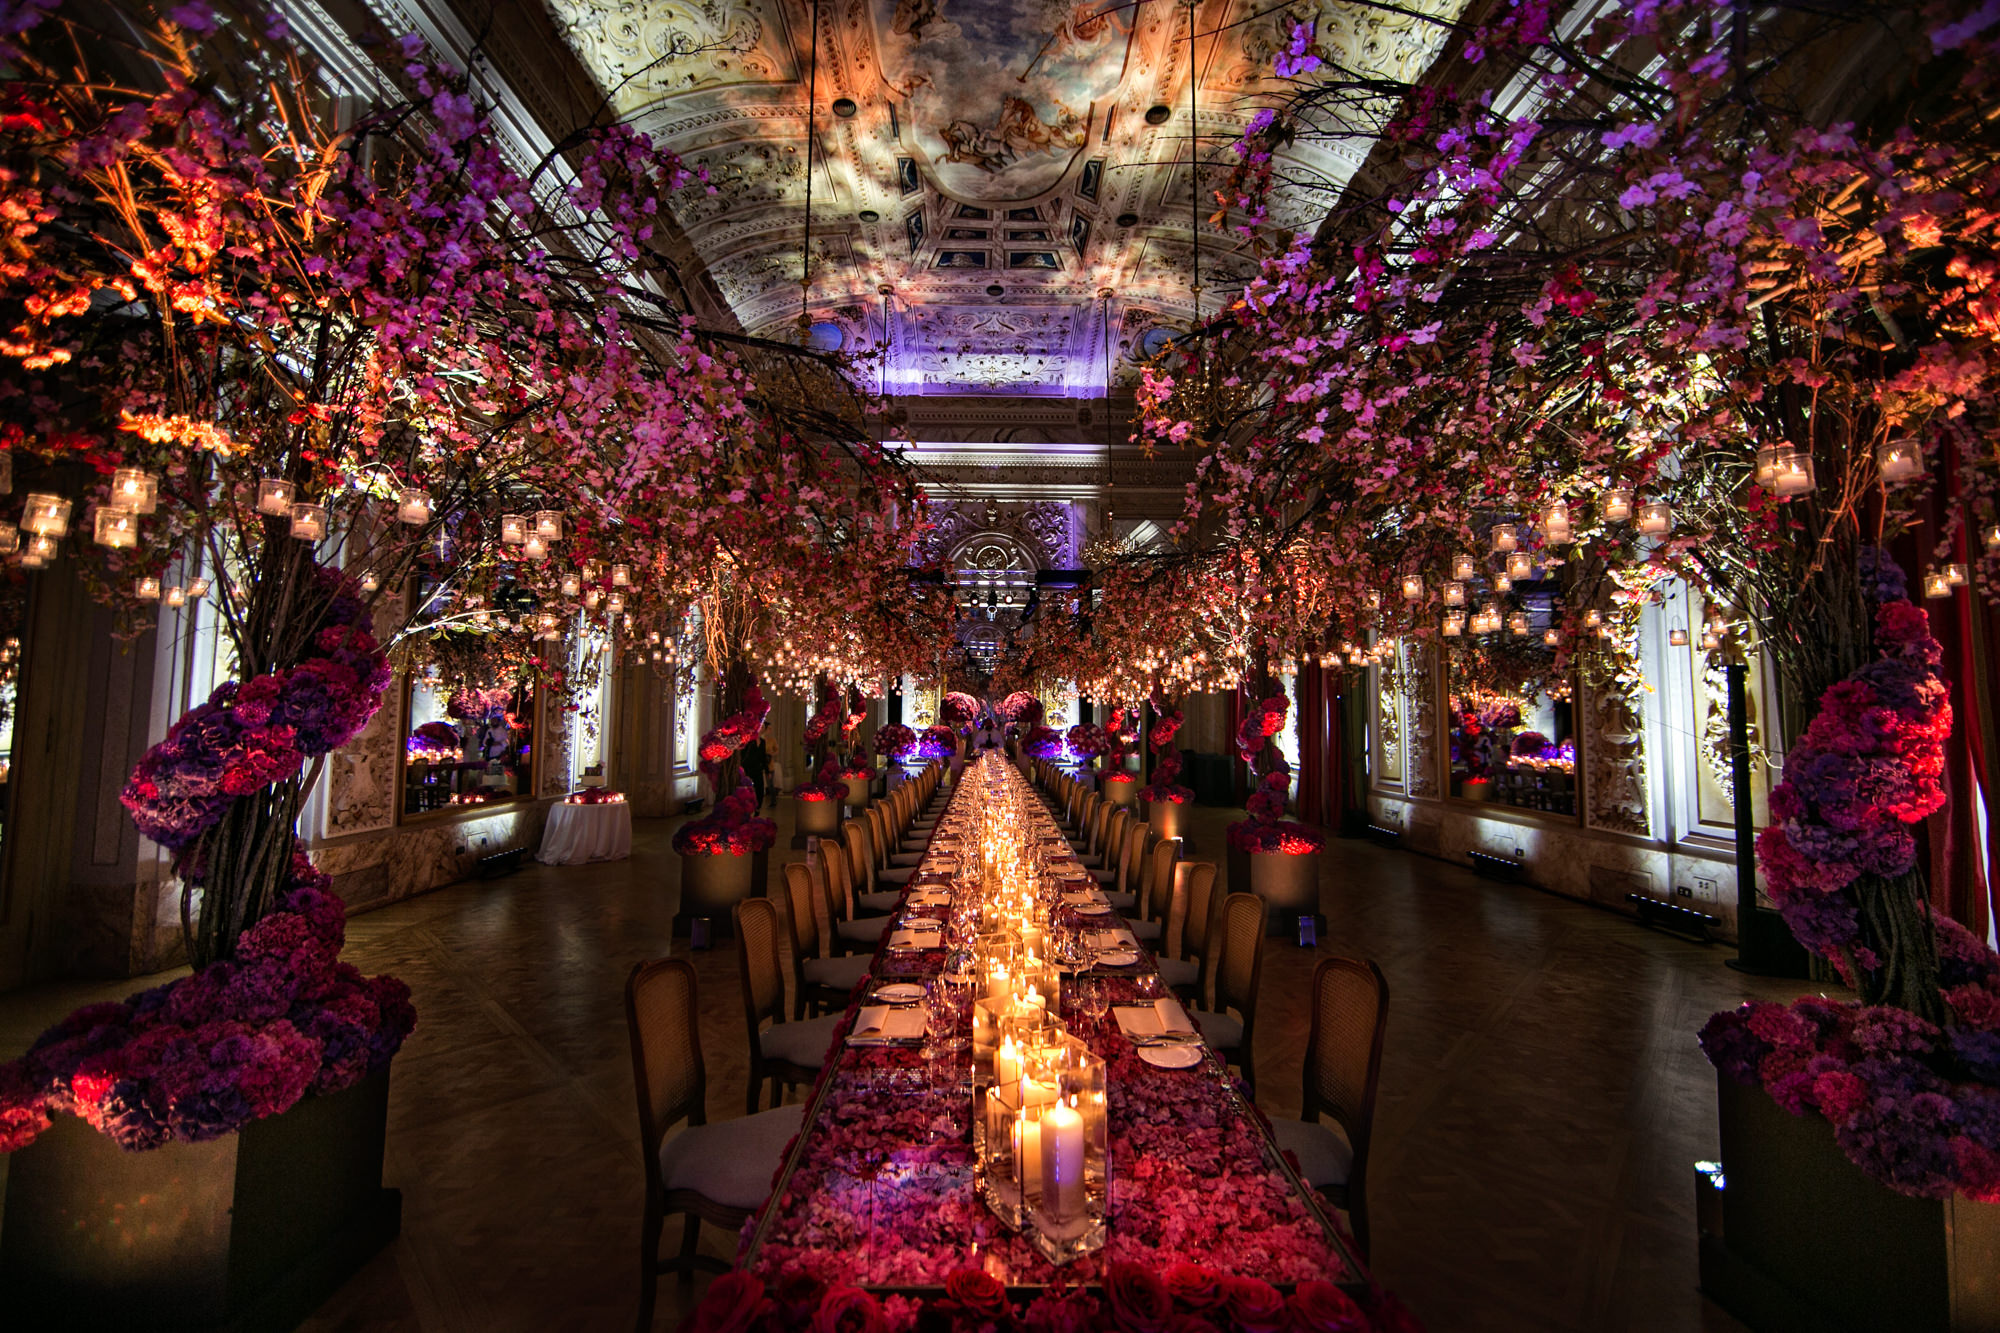 Luxury European wedding table elaborate floral decor pink lighting handpainted ceiling